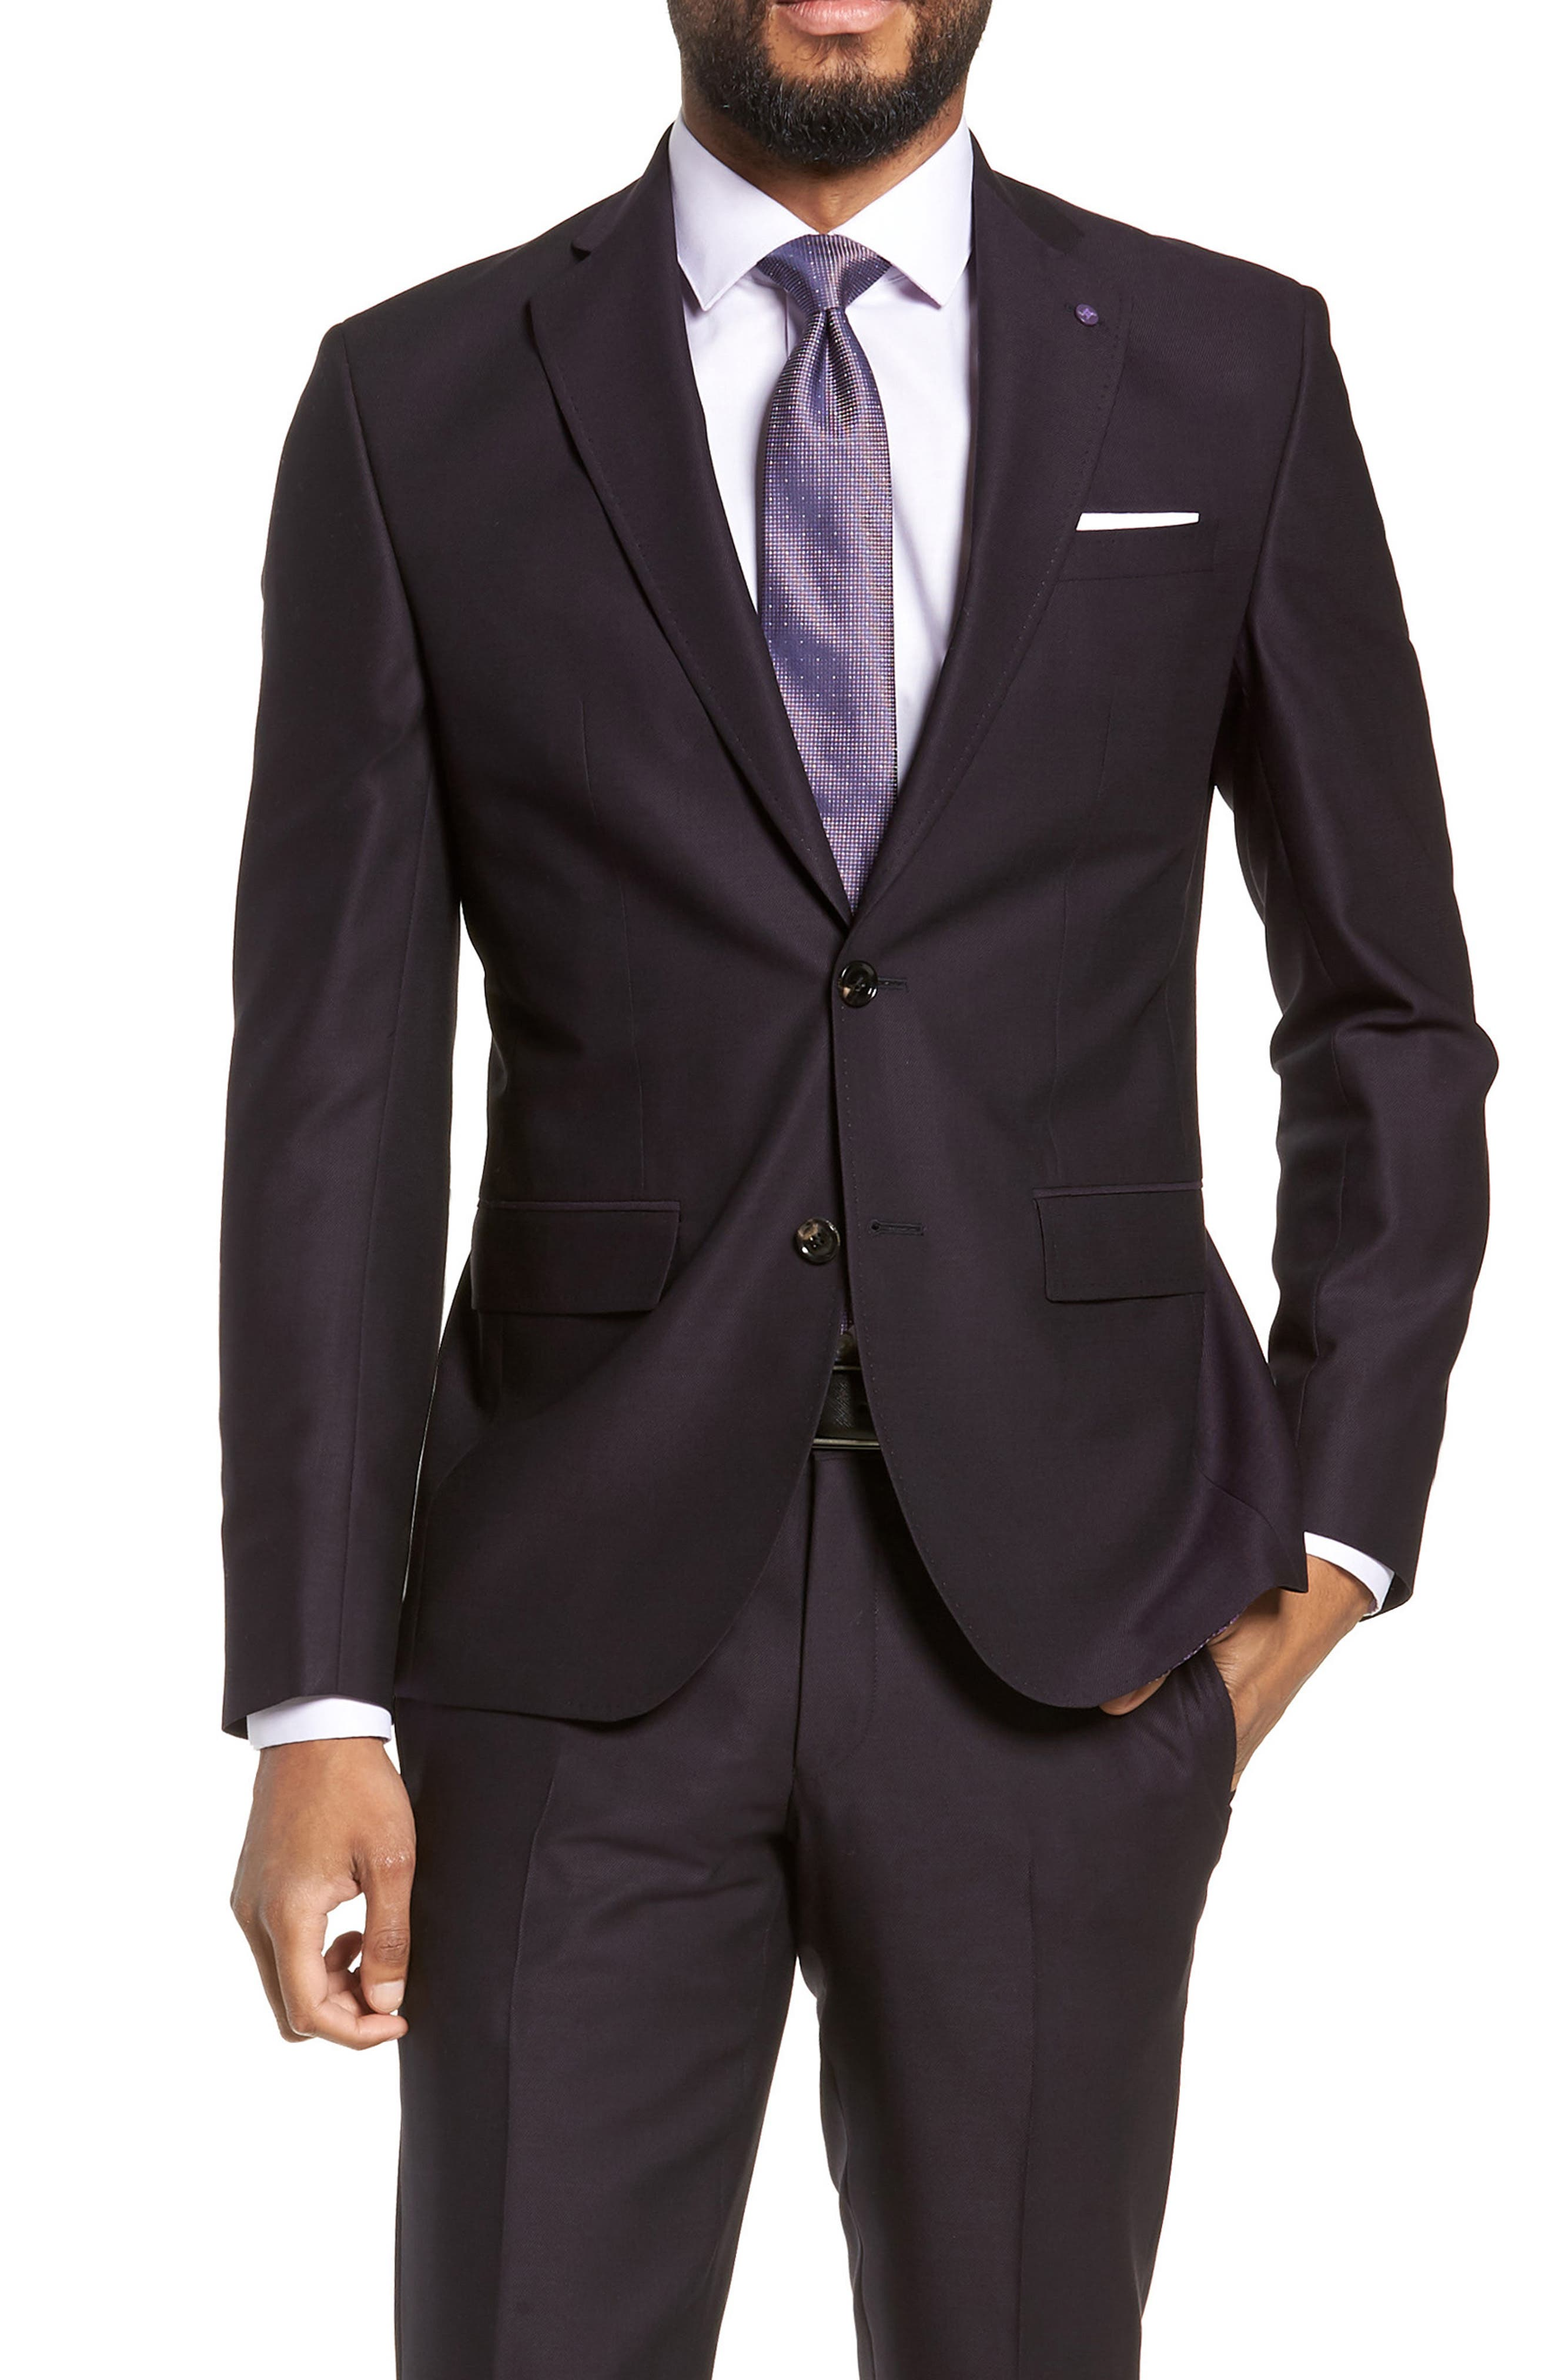 Roger Extra Trim Fit Solid Wool Suit,                             Alternate thumbnail 5, color,                             DEEP EGGPLANT